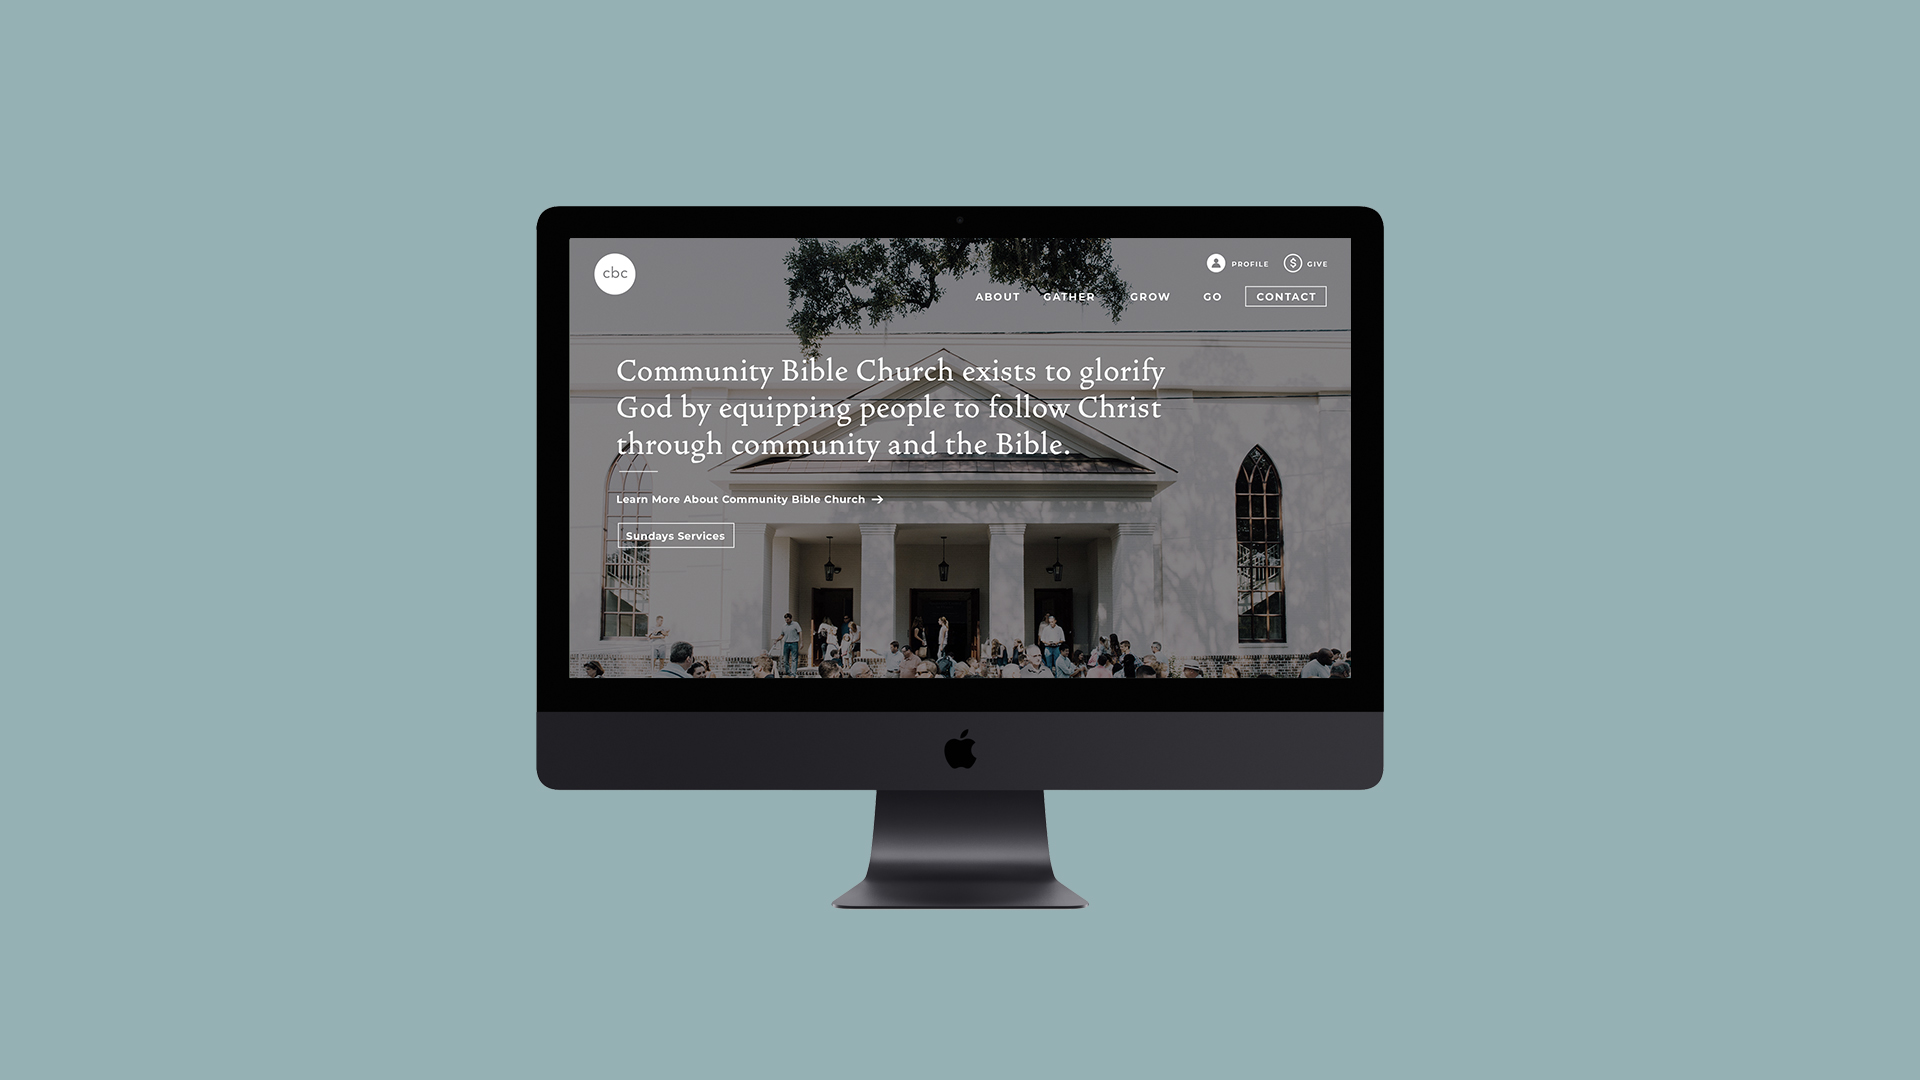 Community Bible Church Website Redesign - Community Bible Church is a large non-denominational church located in Savannah, Ga. Their highest values are teaching the Bible and fostering a community that takes care of each other and looks outward to their city and the rest of the world. The website is currently being built. For a preview visit www.cbcsavannah.co